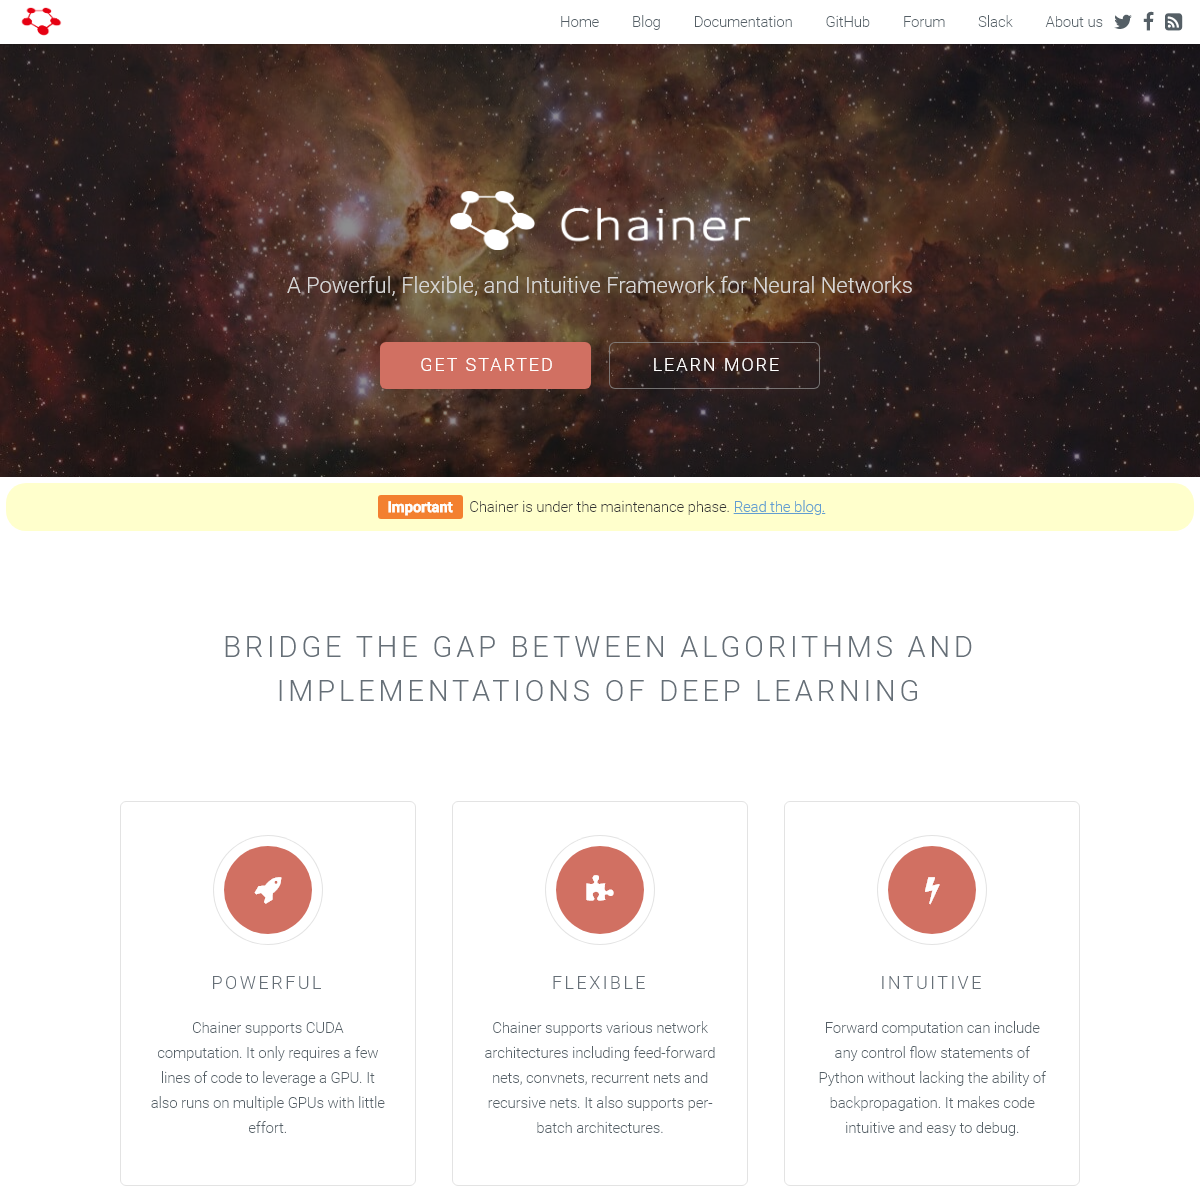 Chainer- A flexible framework for neural networks